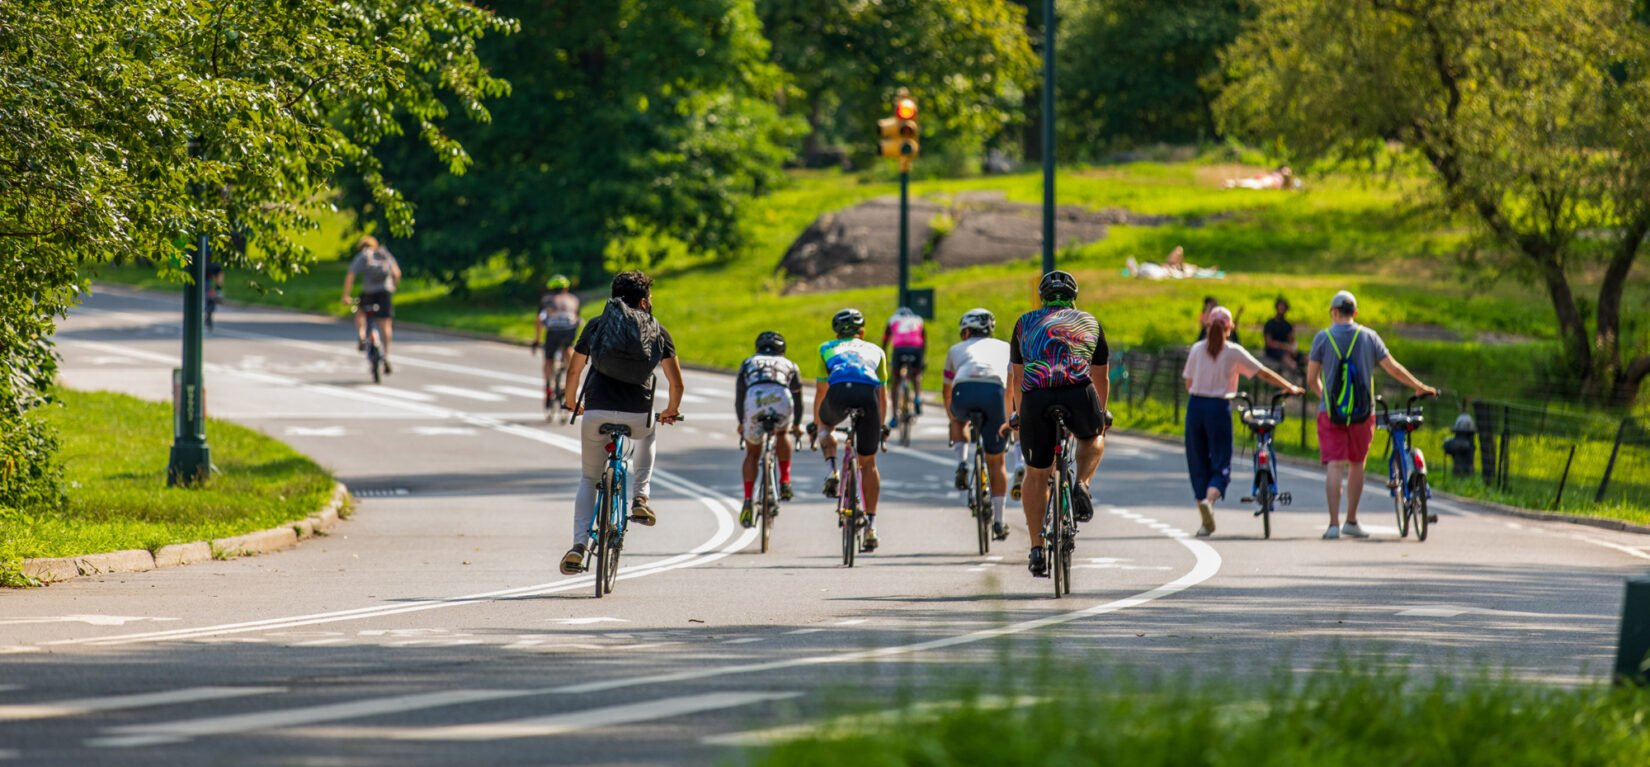 Bicyclists using the bike lanes of the roadway that circles the Park